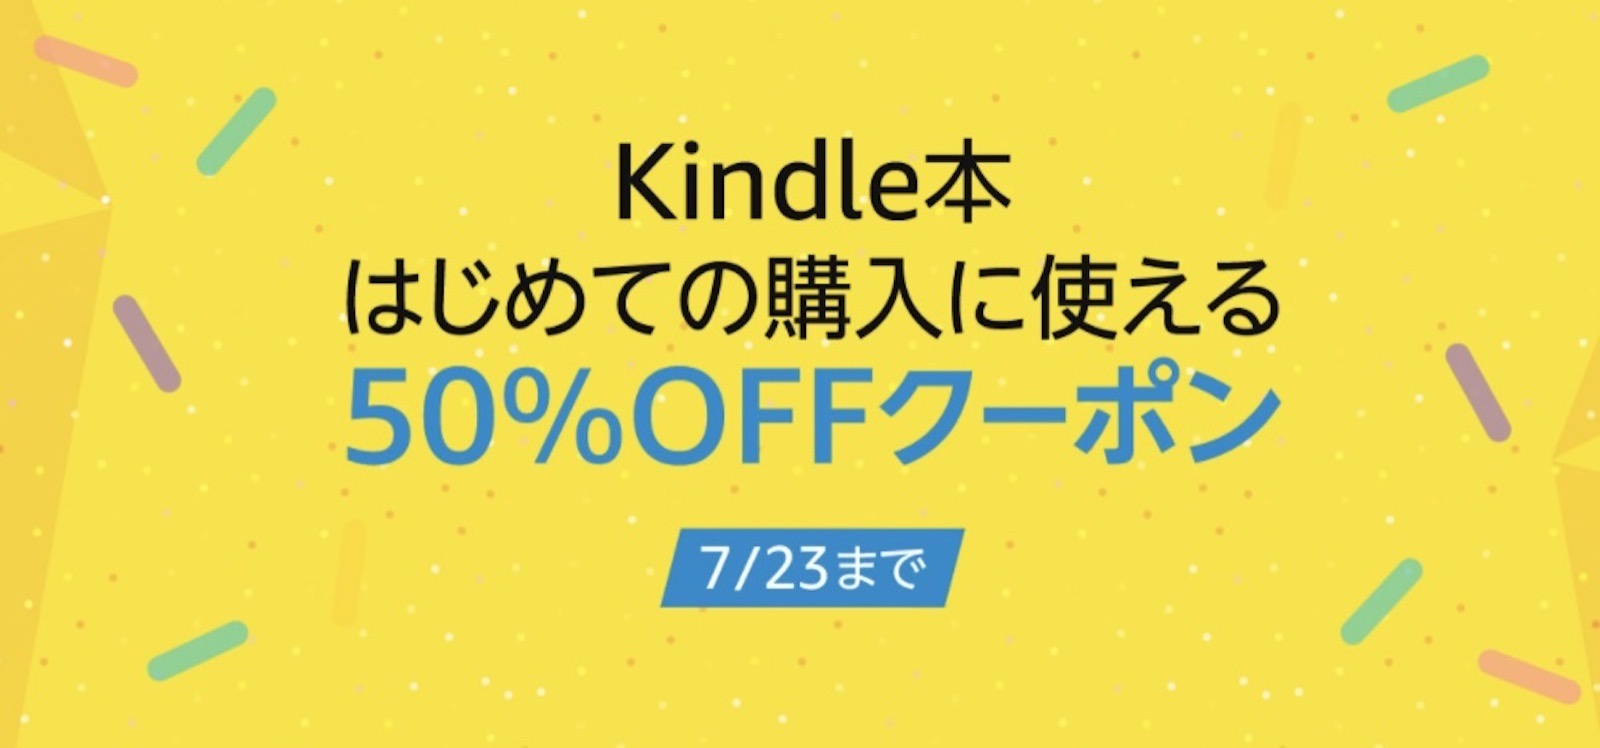 First kindle book 50percent off campaign